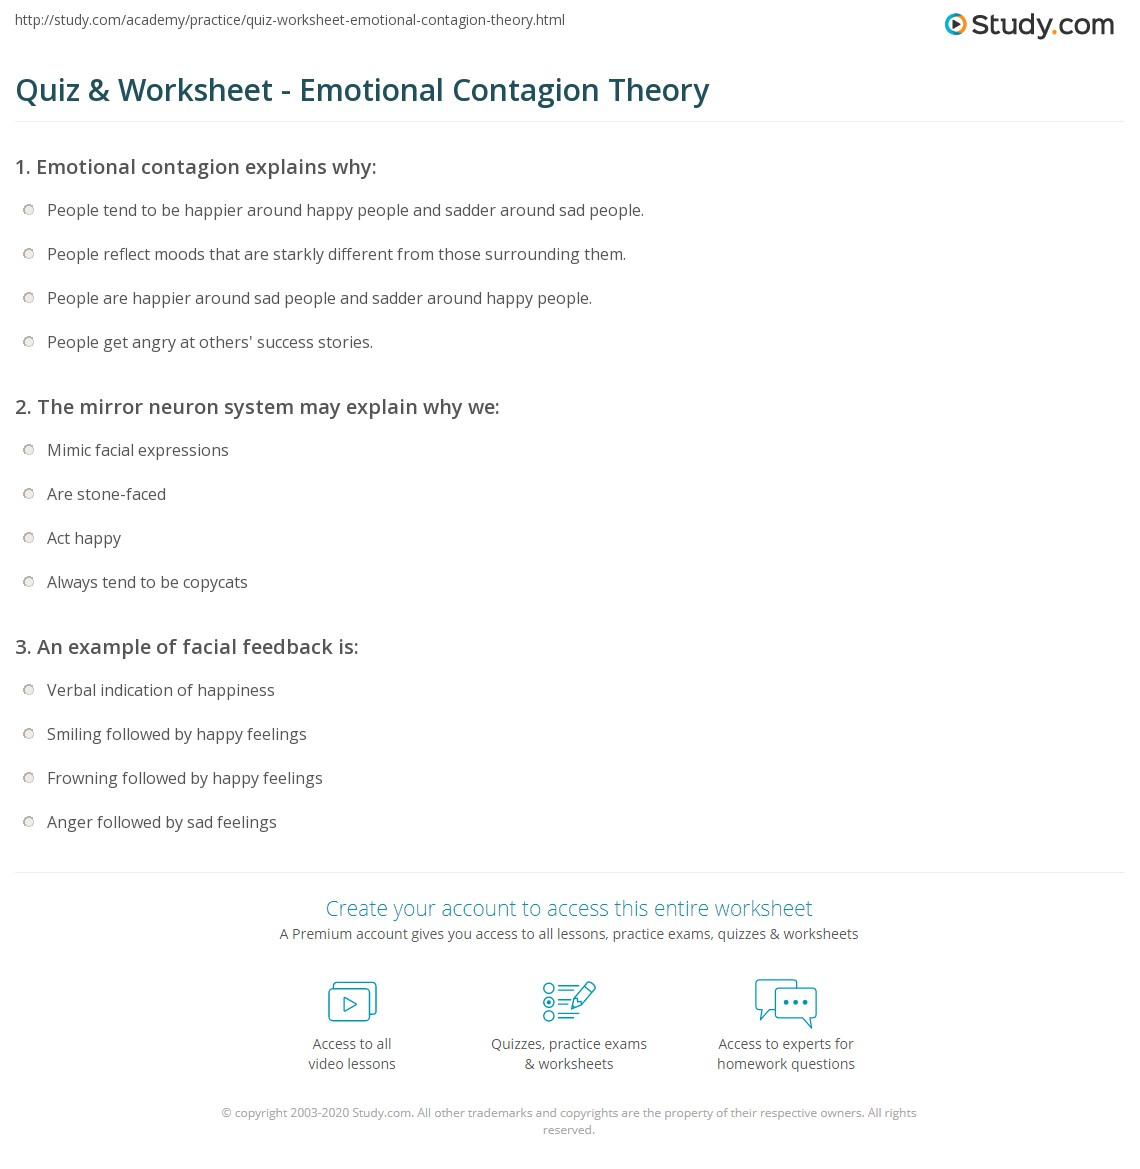 Quiz Worksheet Emotional Contagion Theory Study